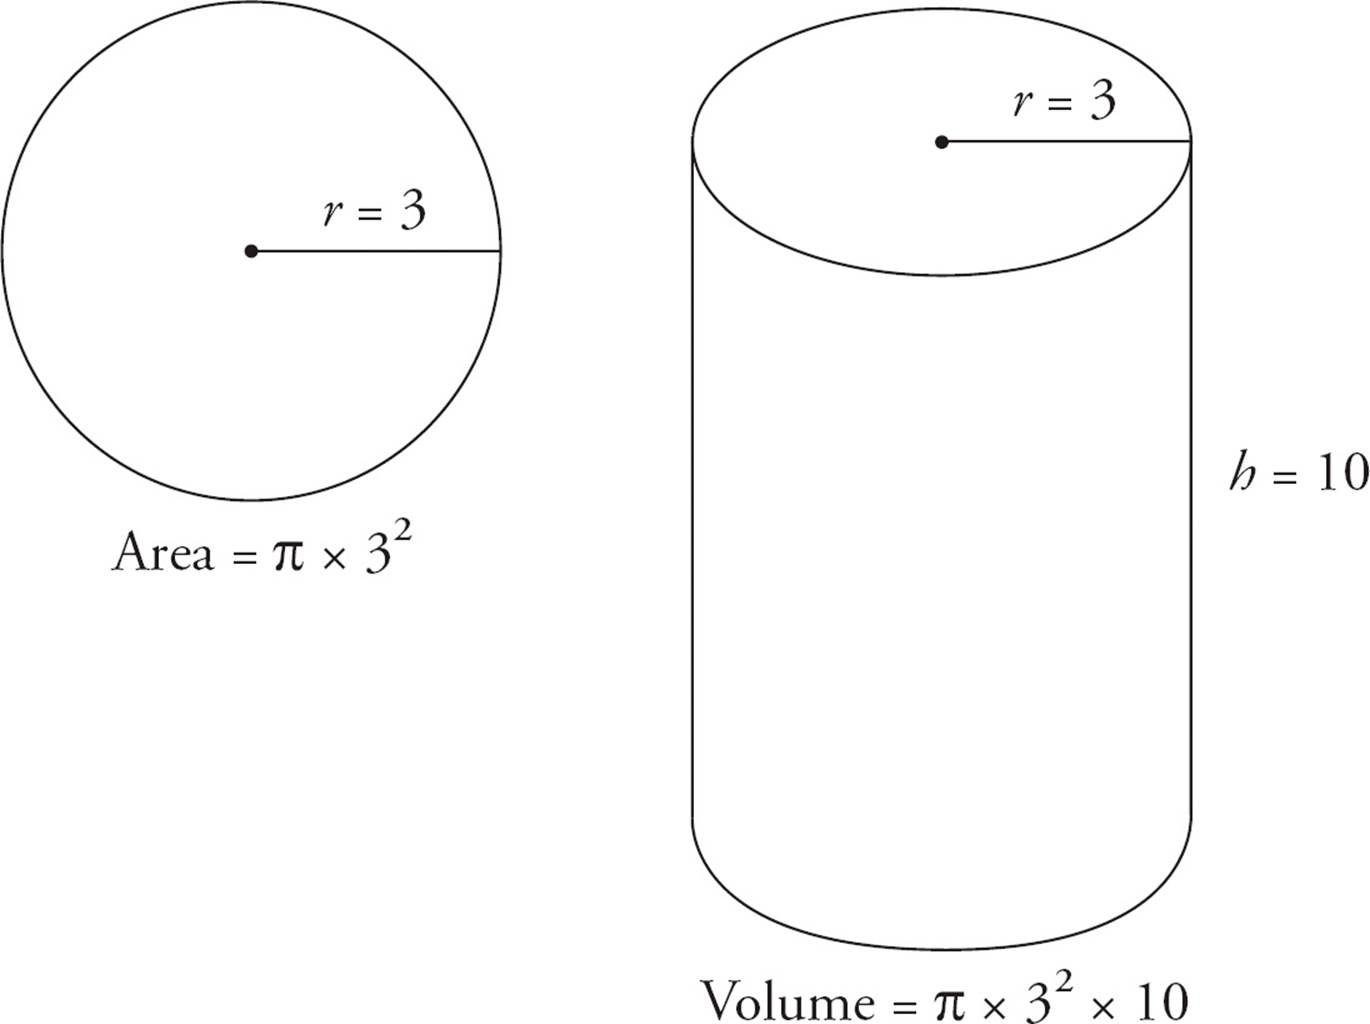 To Find The Volume Of The Cylinder, Multiply That Area By The Height Of The